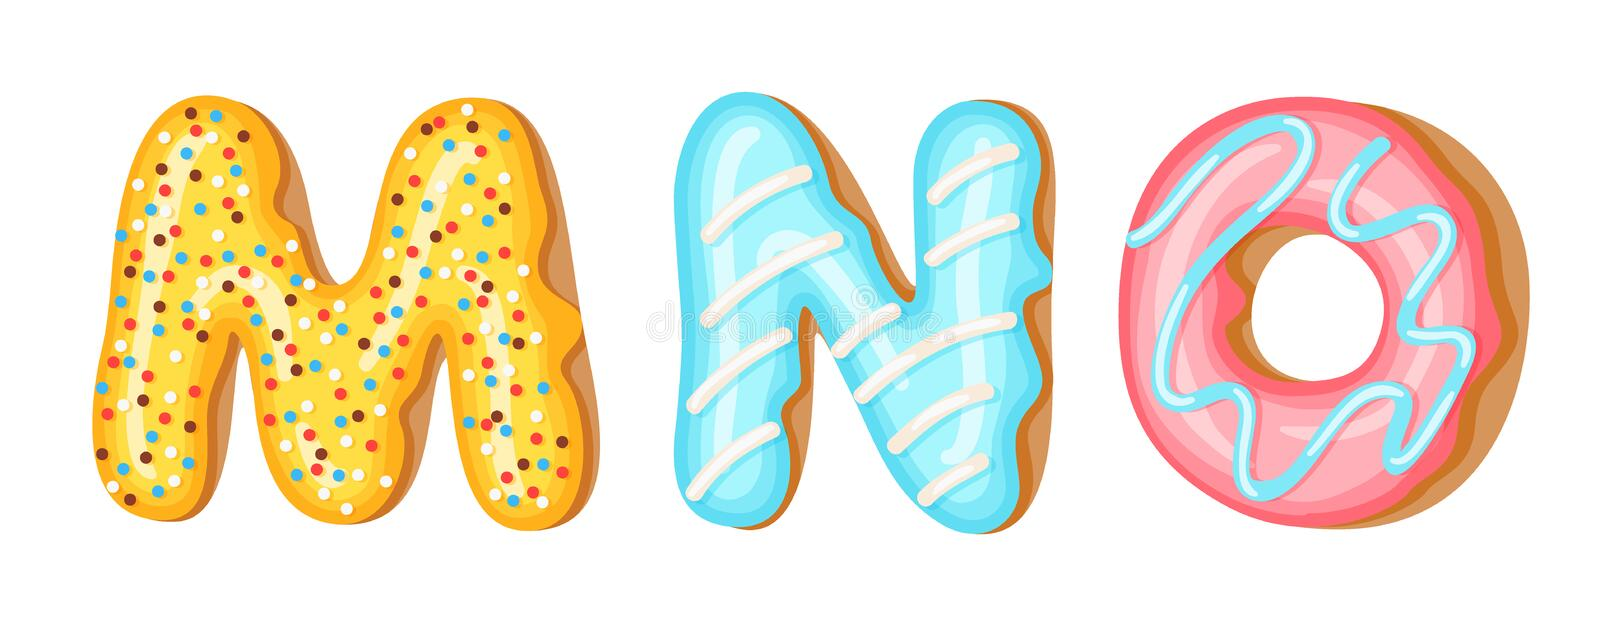 Donut icing upper latters - M, N, O. Font of donuts. Bakery sweet alphabet. Donut alphabet latters A b C isolated on. White background, vector illustration stock illustration